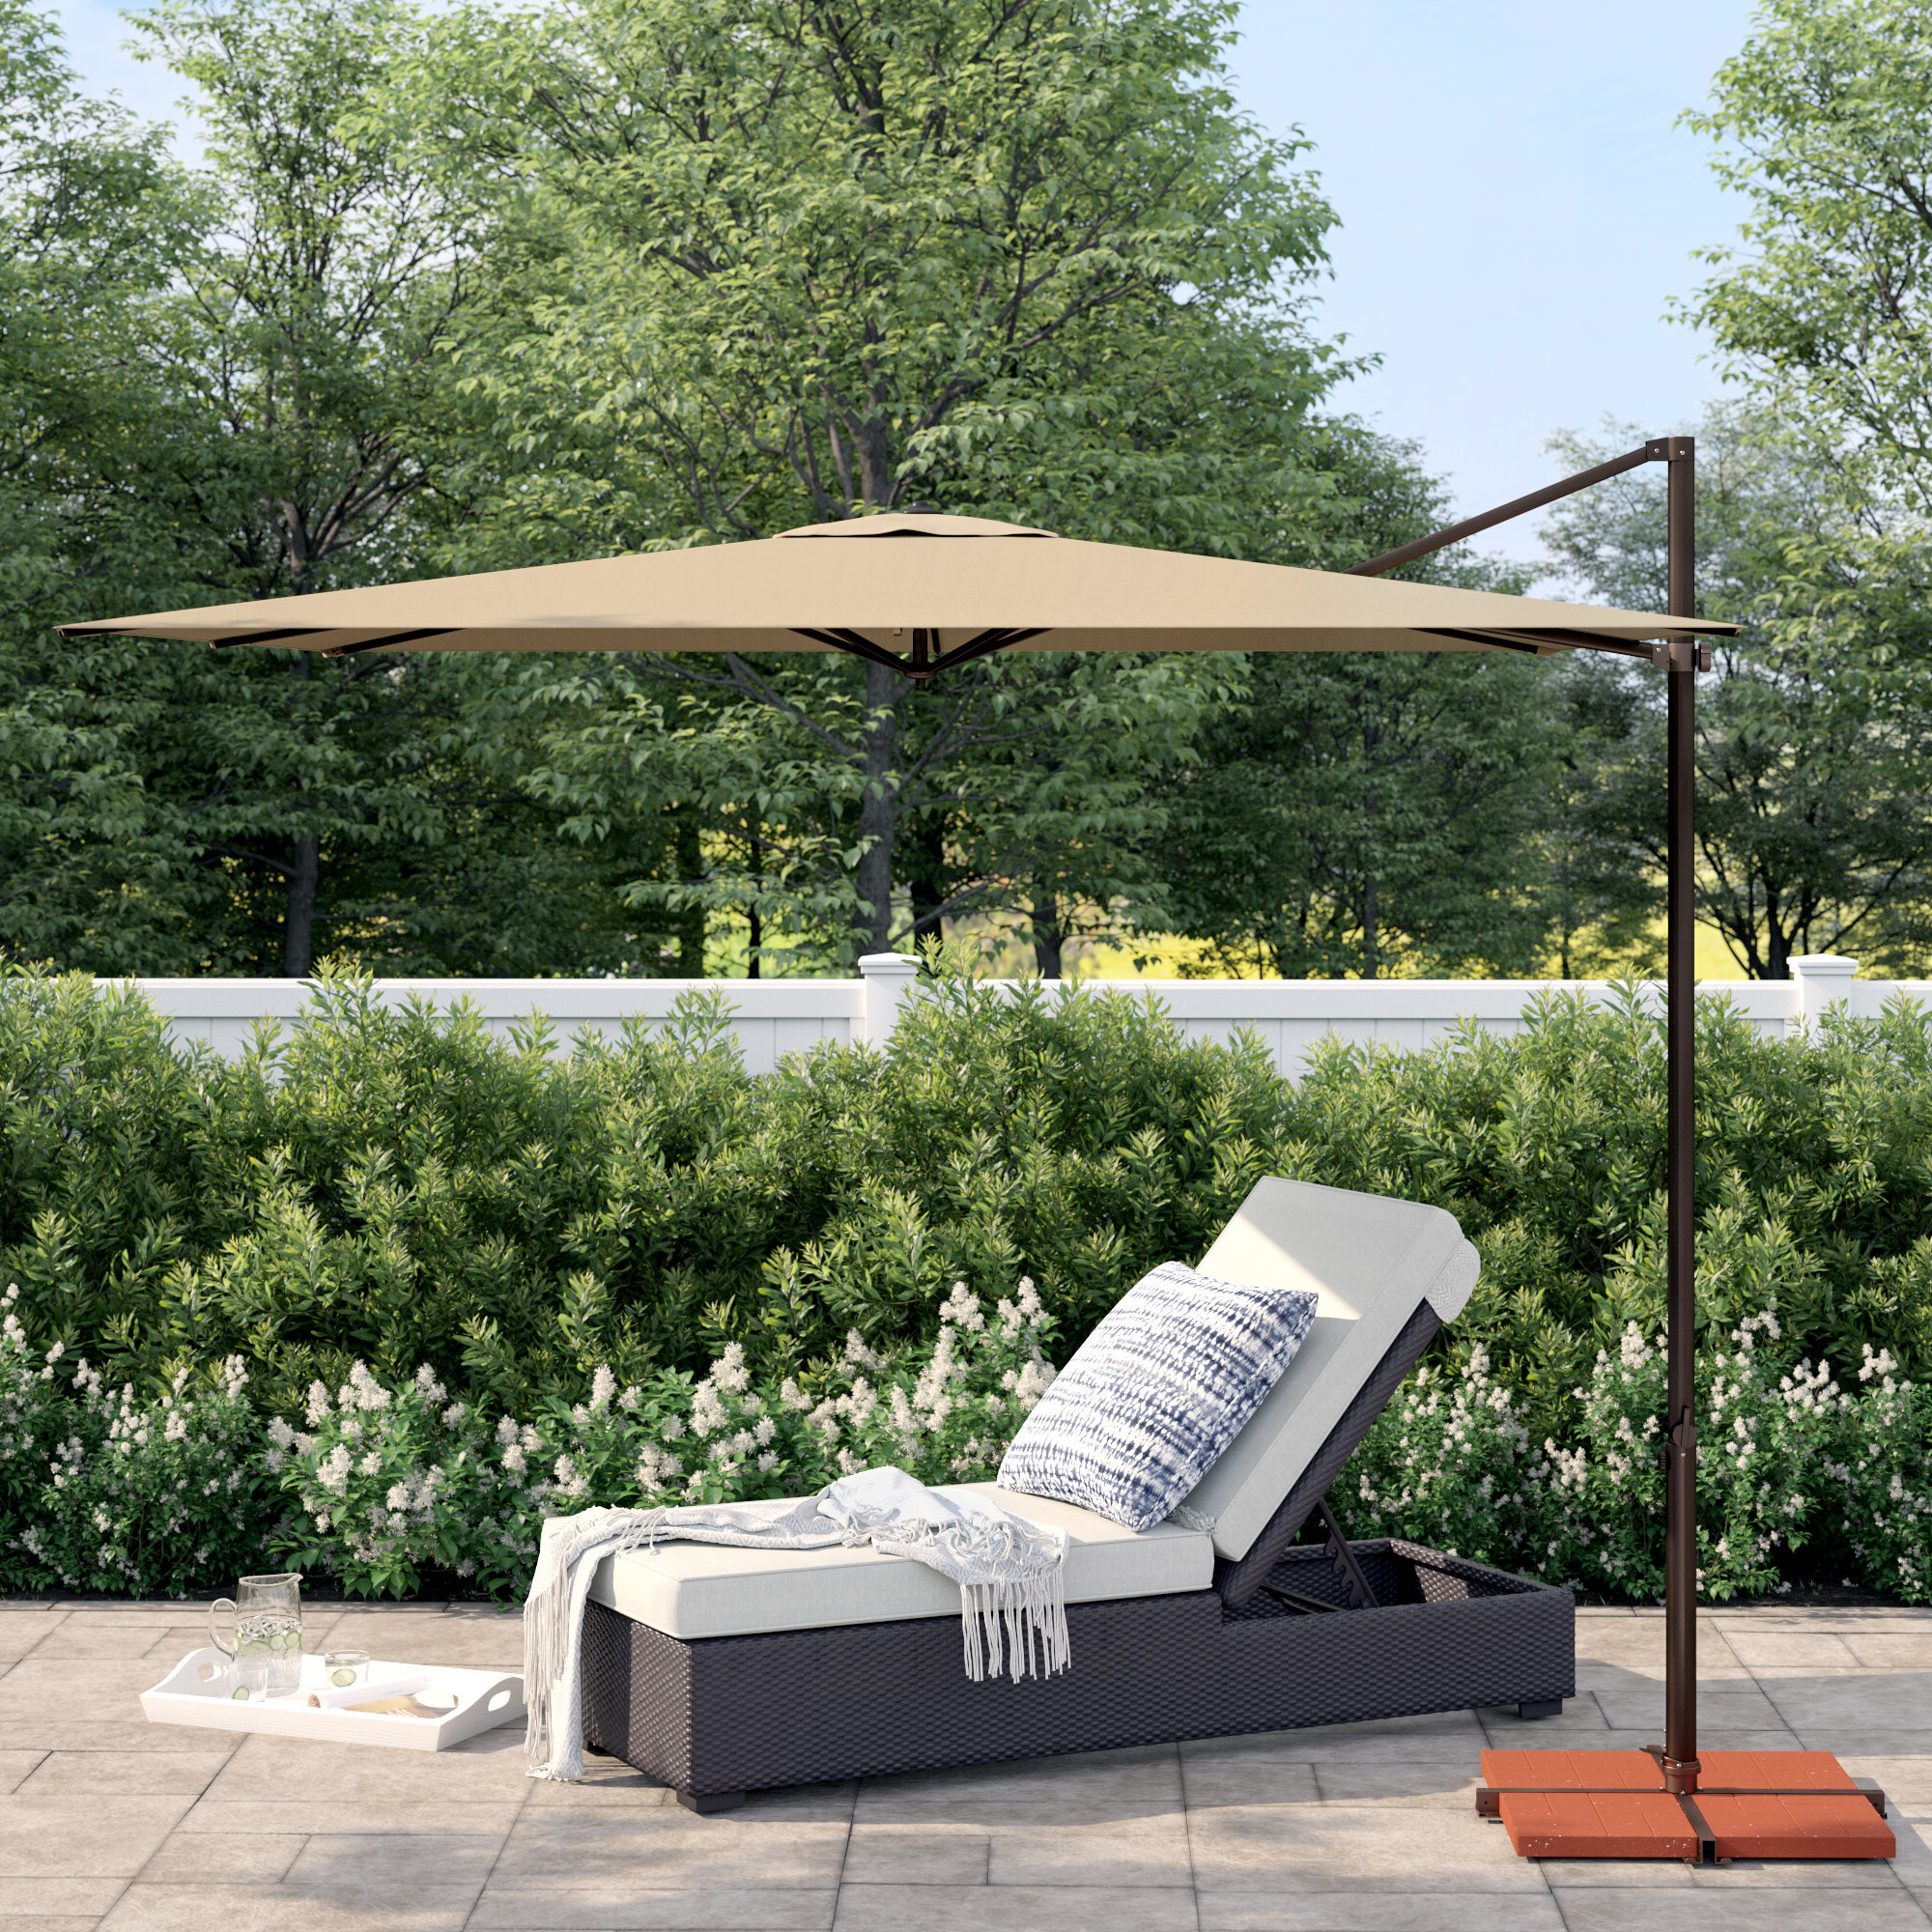 Macclesfield Square Cantilever Umbrellas Throughout Most Popular Cora 8.6' Square Cantilever Umbrella (Gallery 11 of 20)